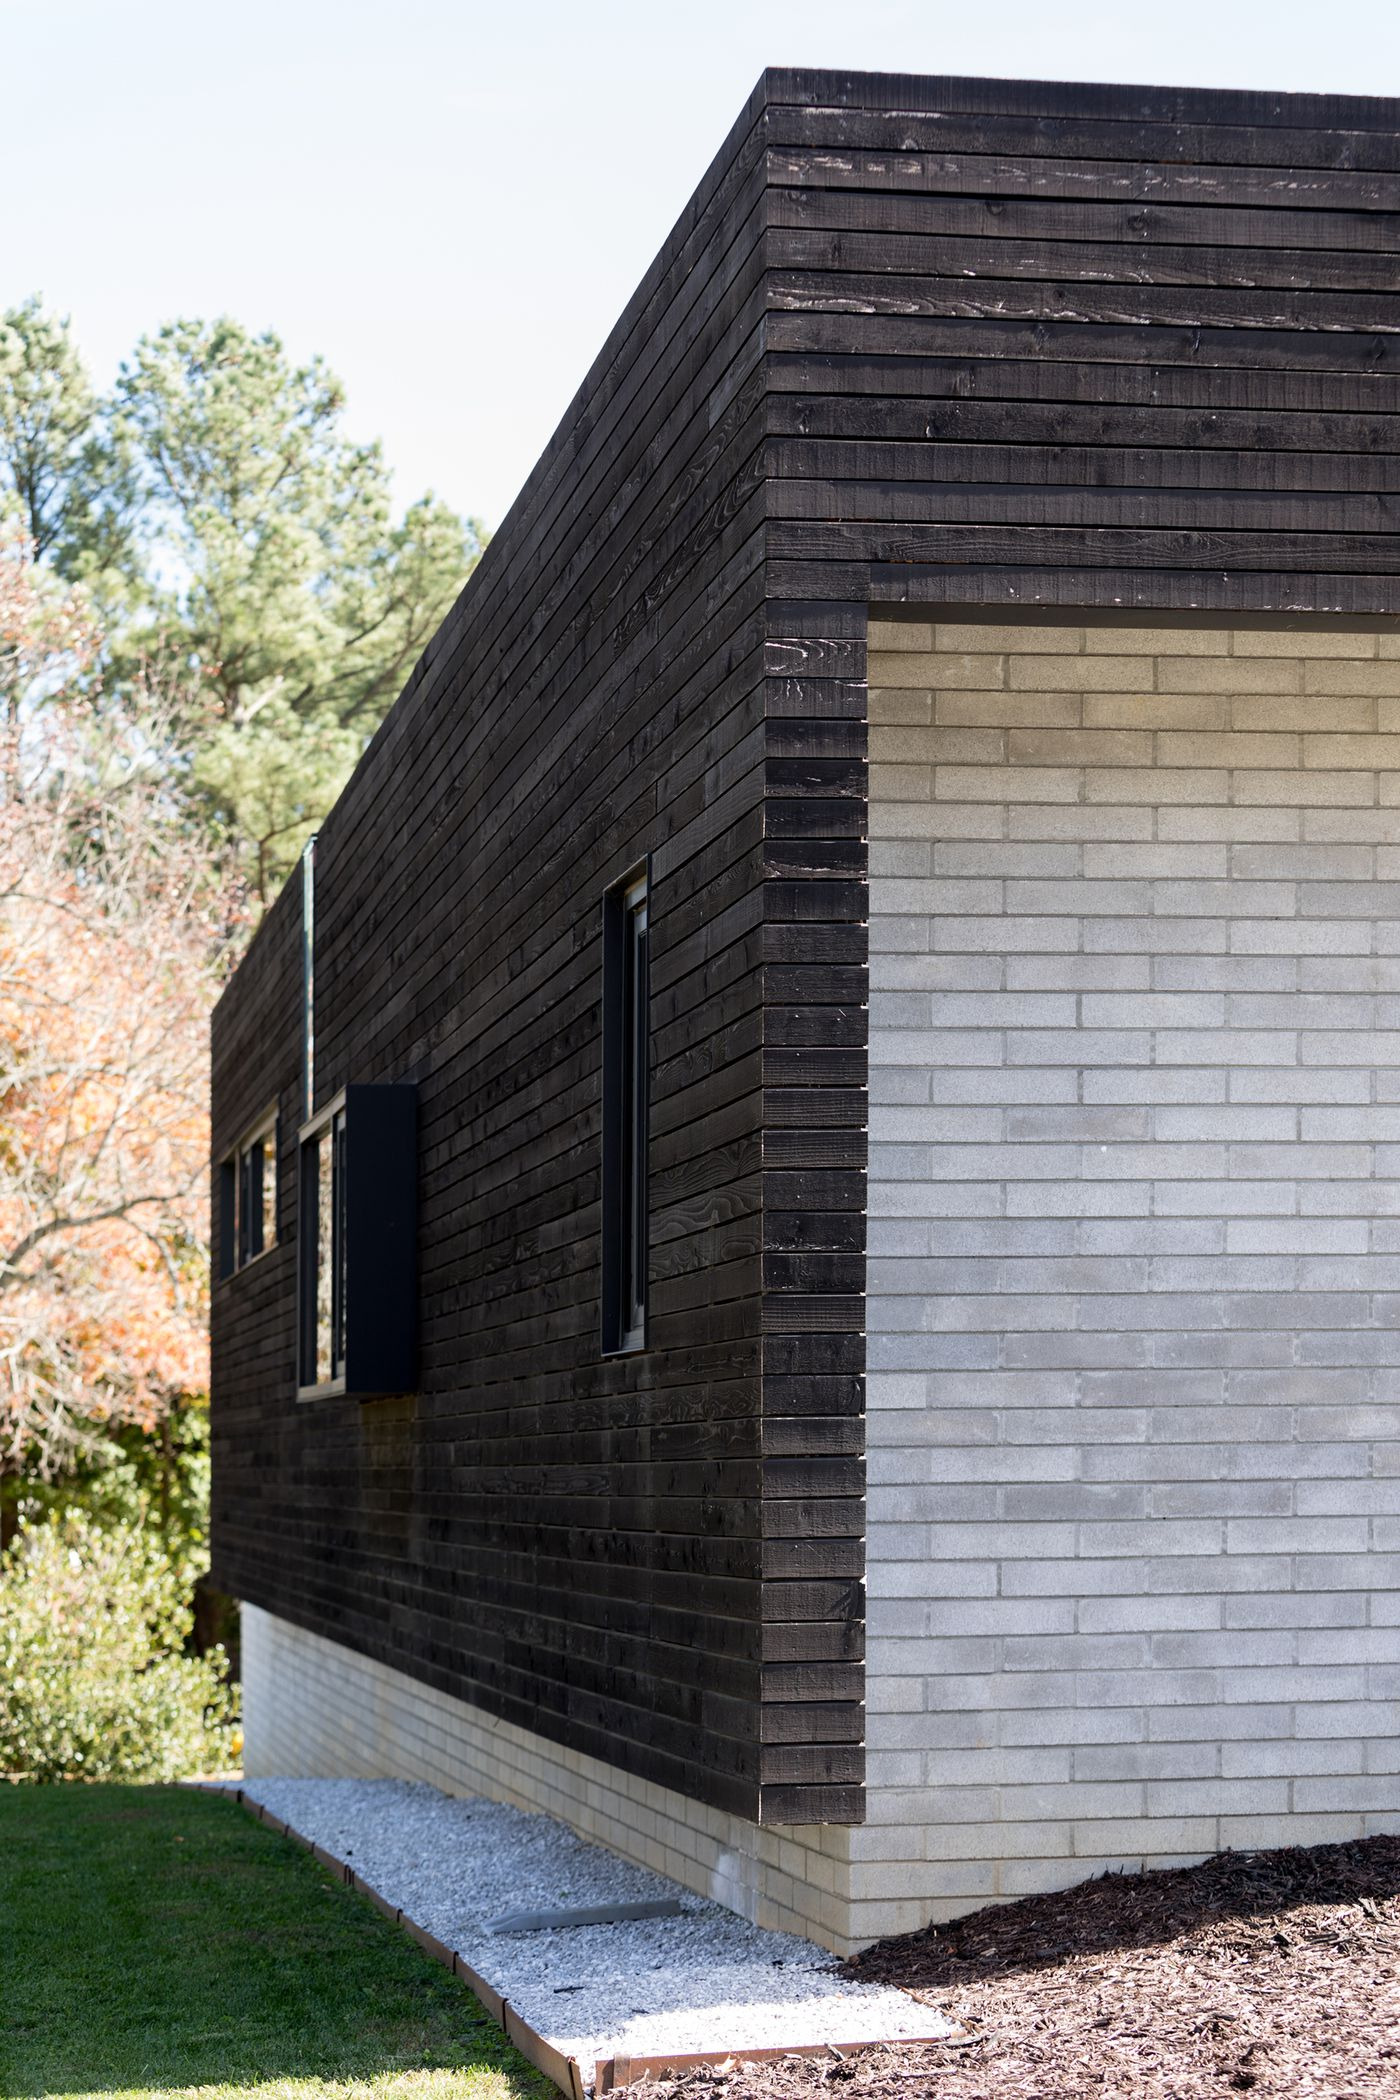 How to Build A Modern House Lovely Building A Modern House for Under $200 A Square Foot Curbed